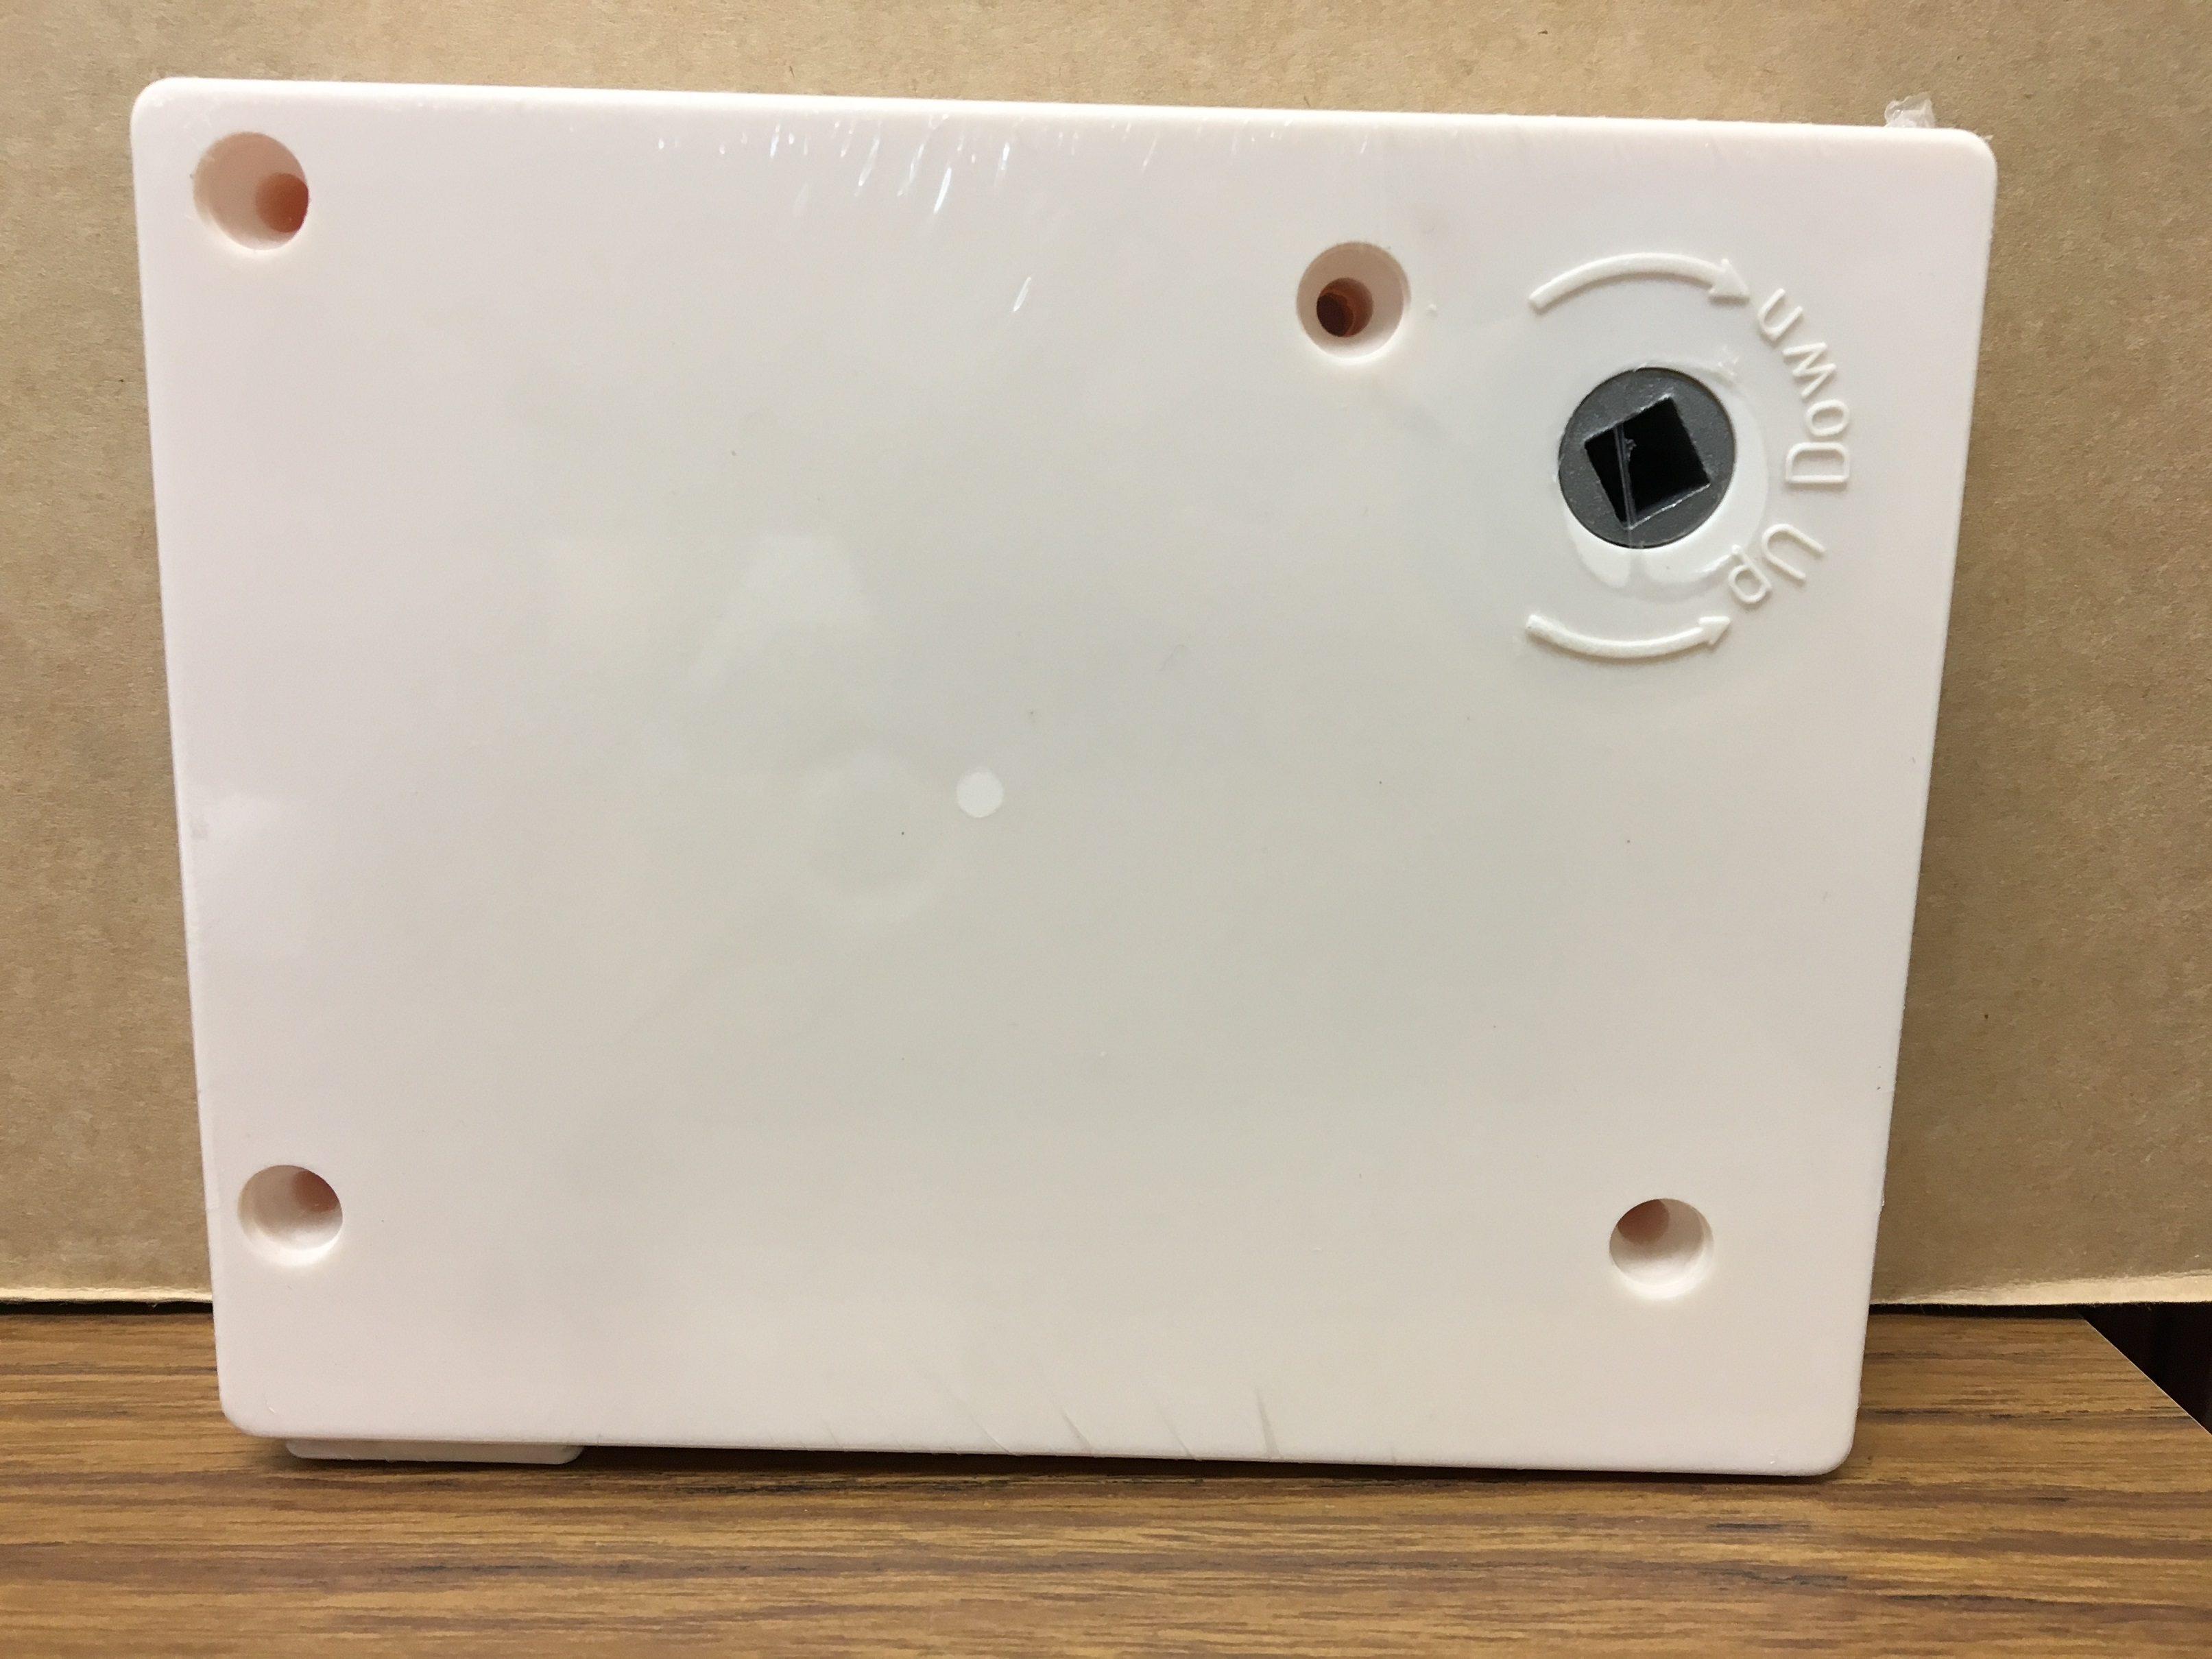 winder box for roller shutter parts